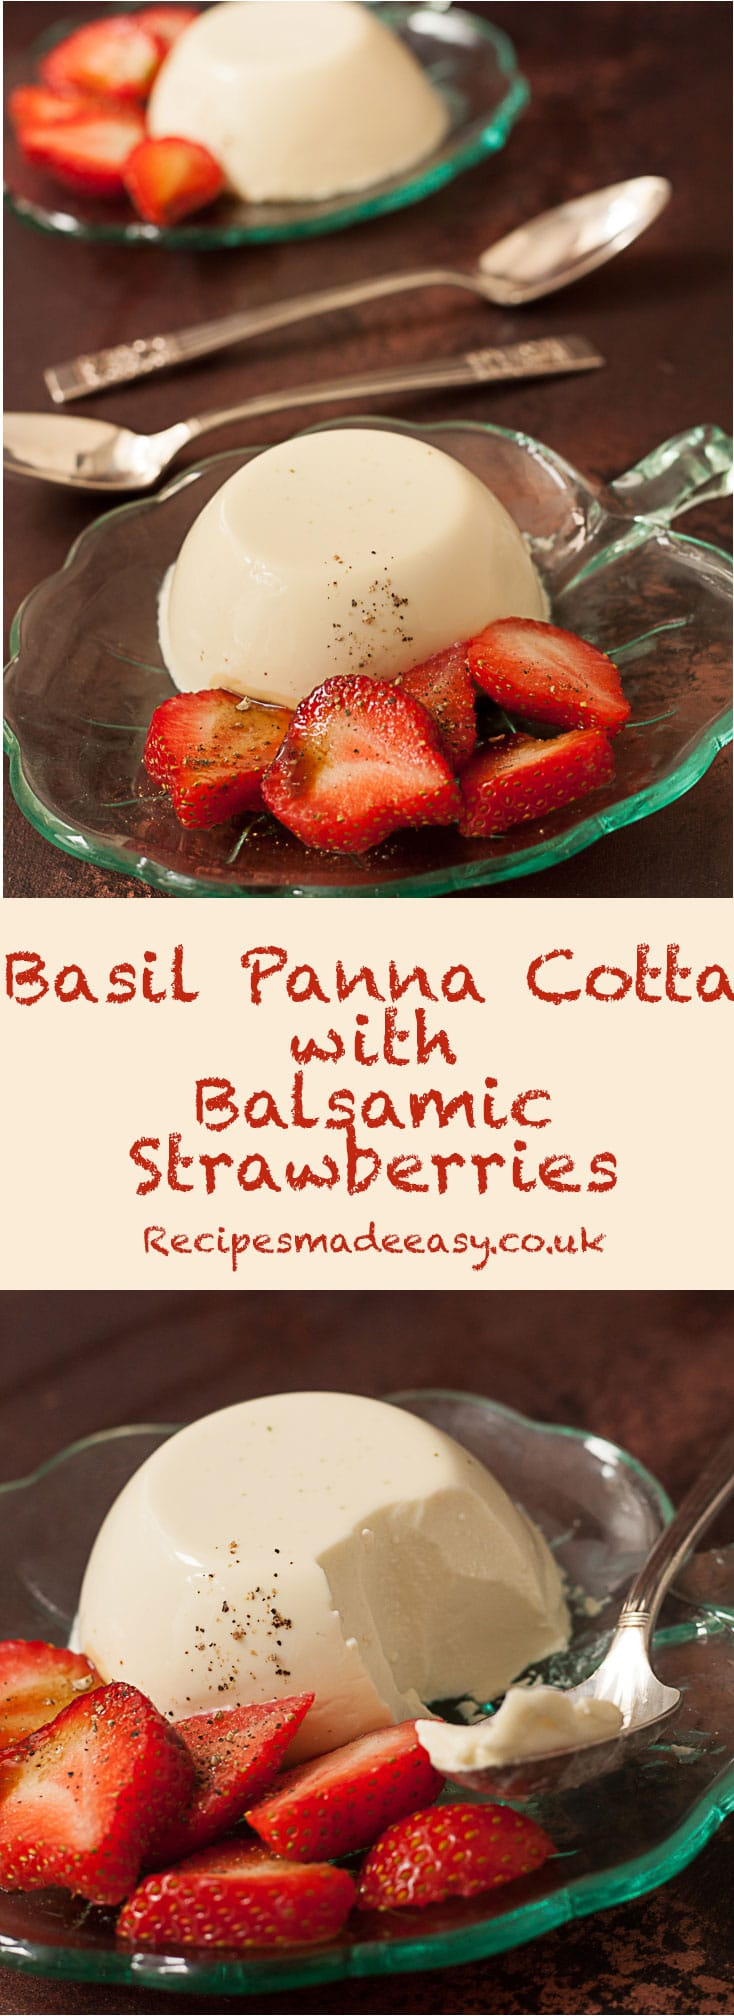 composite shot of basil panna cotta with balsamic strawberries by Recipes Made Easy.